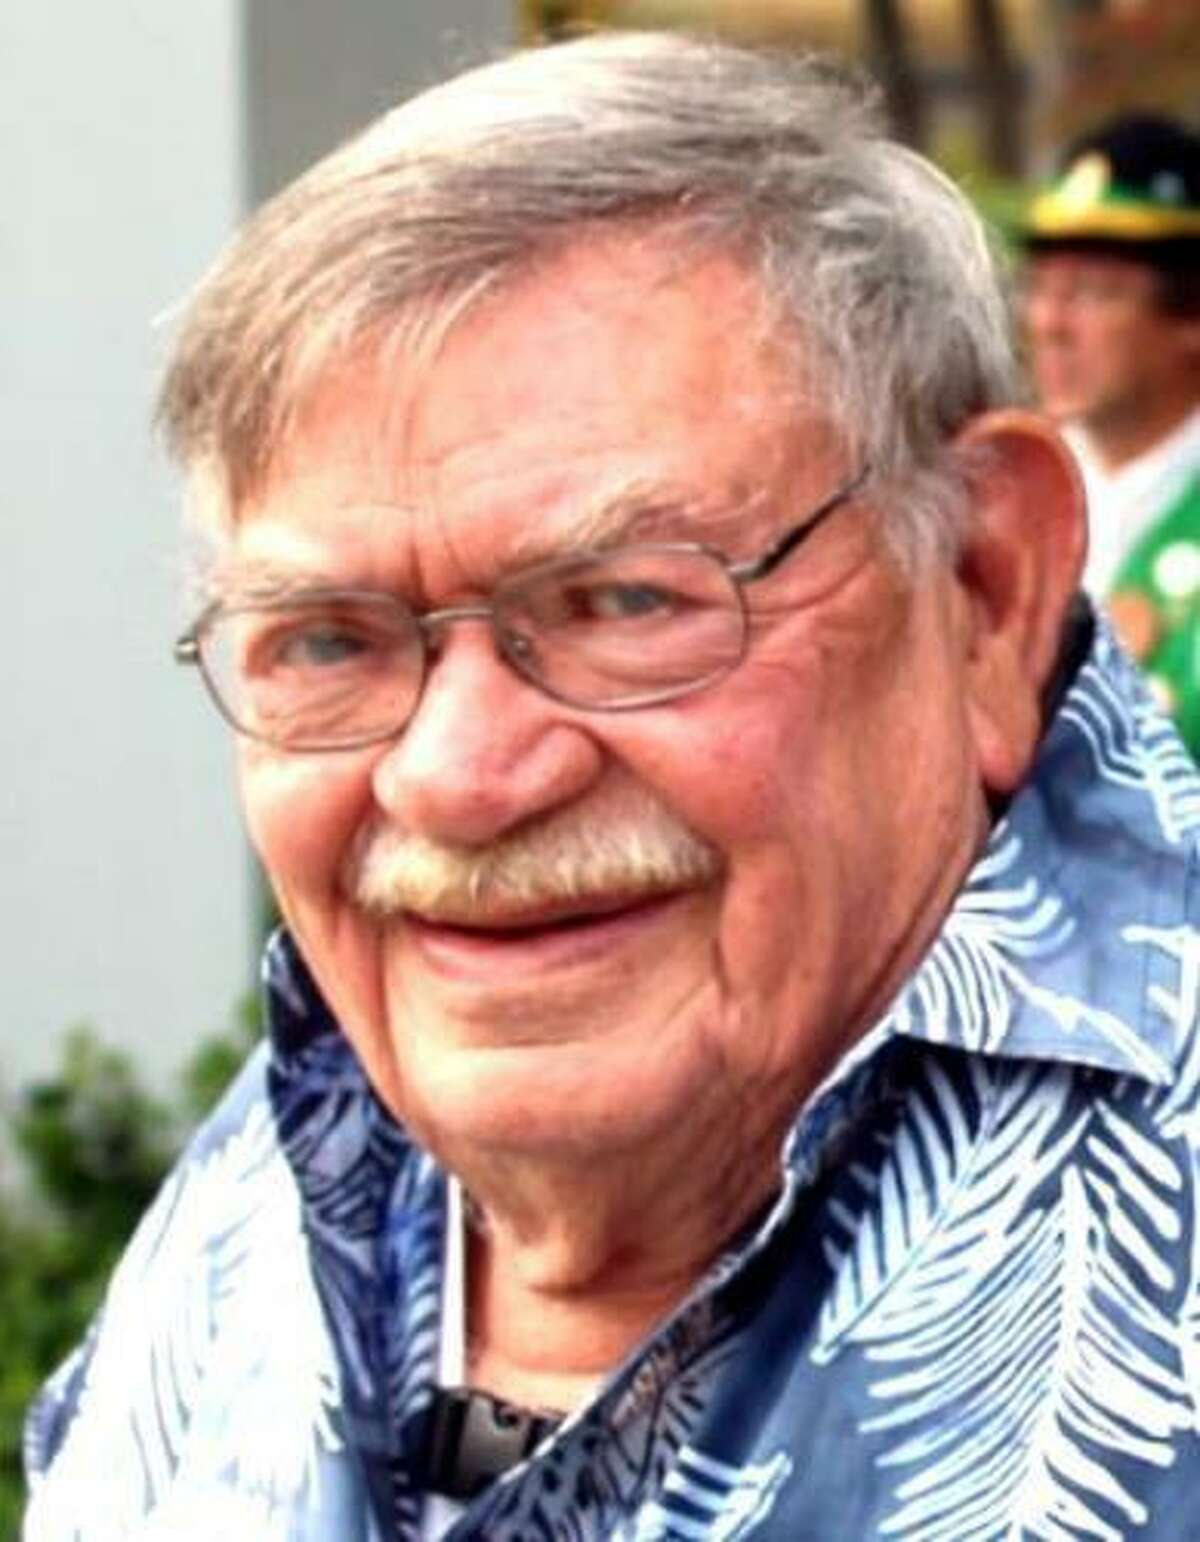 GNCB Consulting Engineers recently announced the death of its founder, Rudi Besier.